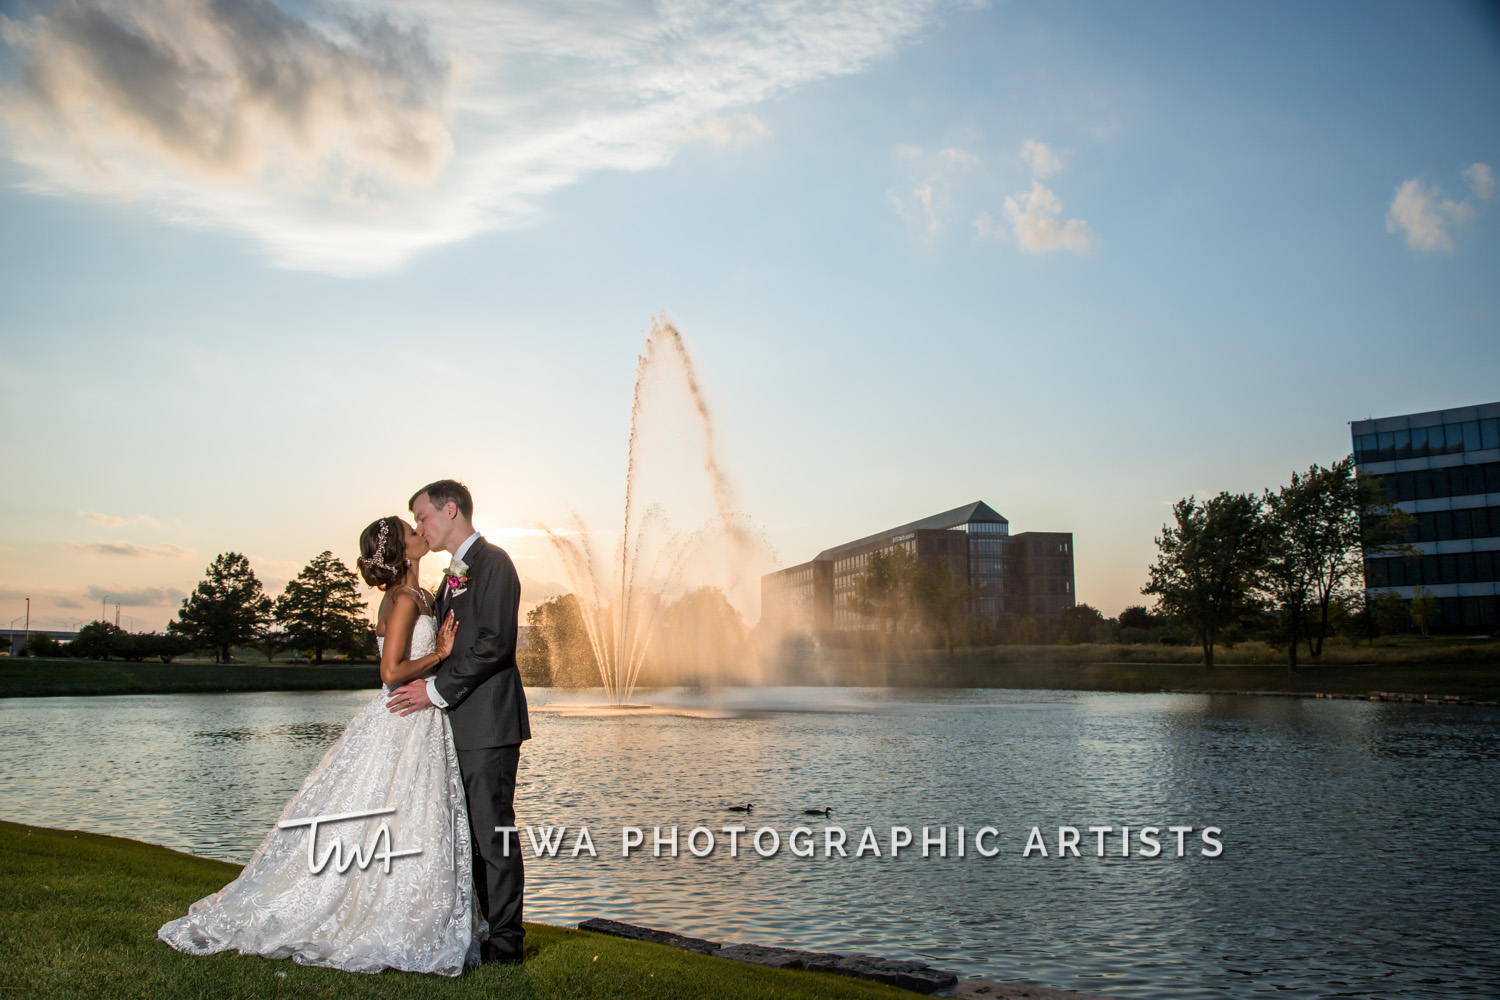 Chicago Wedding Photographers | Megha & Graham's Westin Chicago Northwest Wedding | TWA Photographic Artists